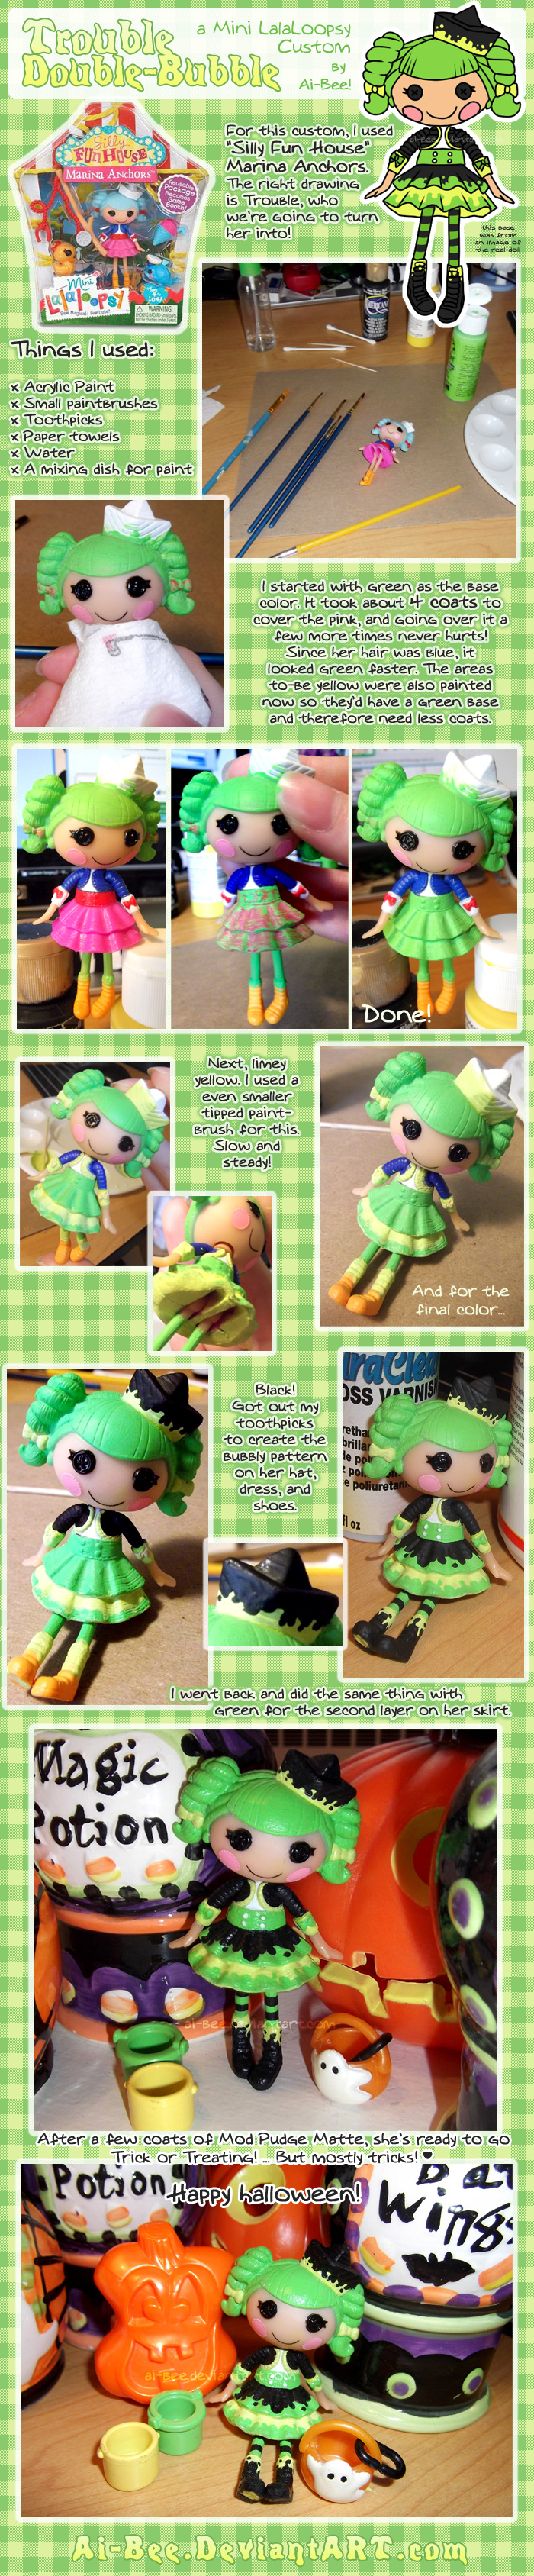 LLL - Trouble Double-Bubble Custom by Ai-Bee